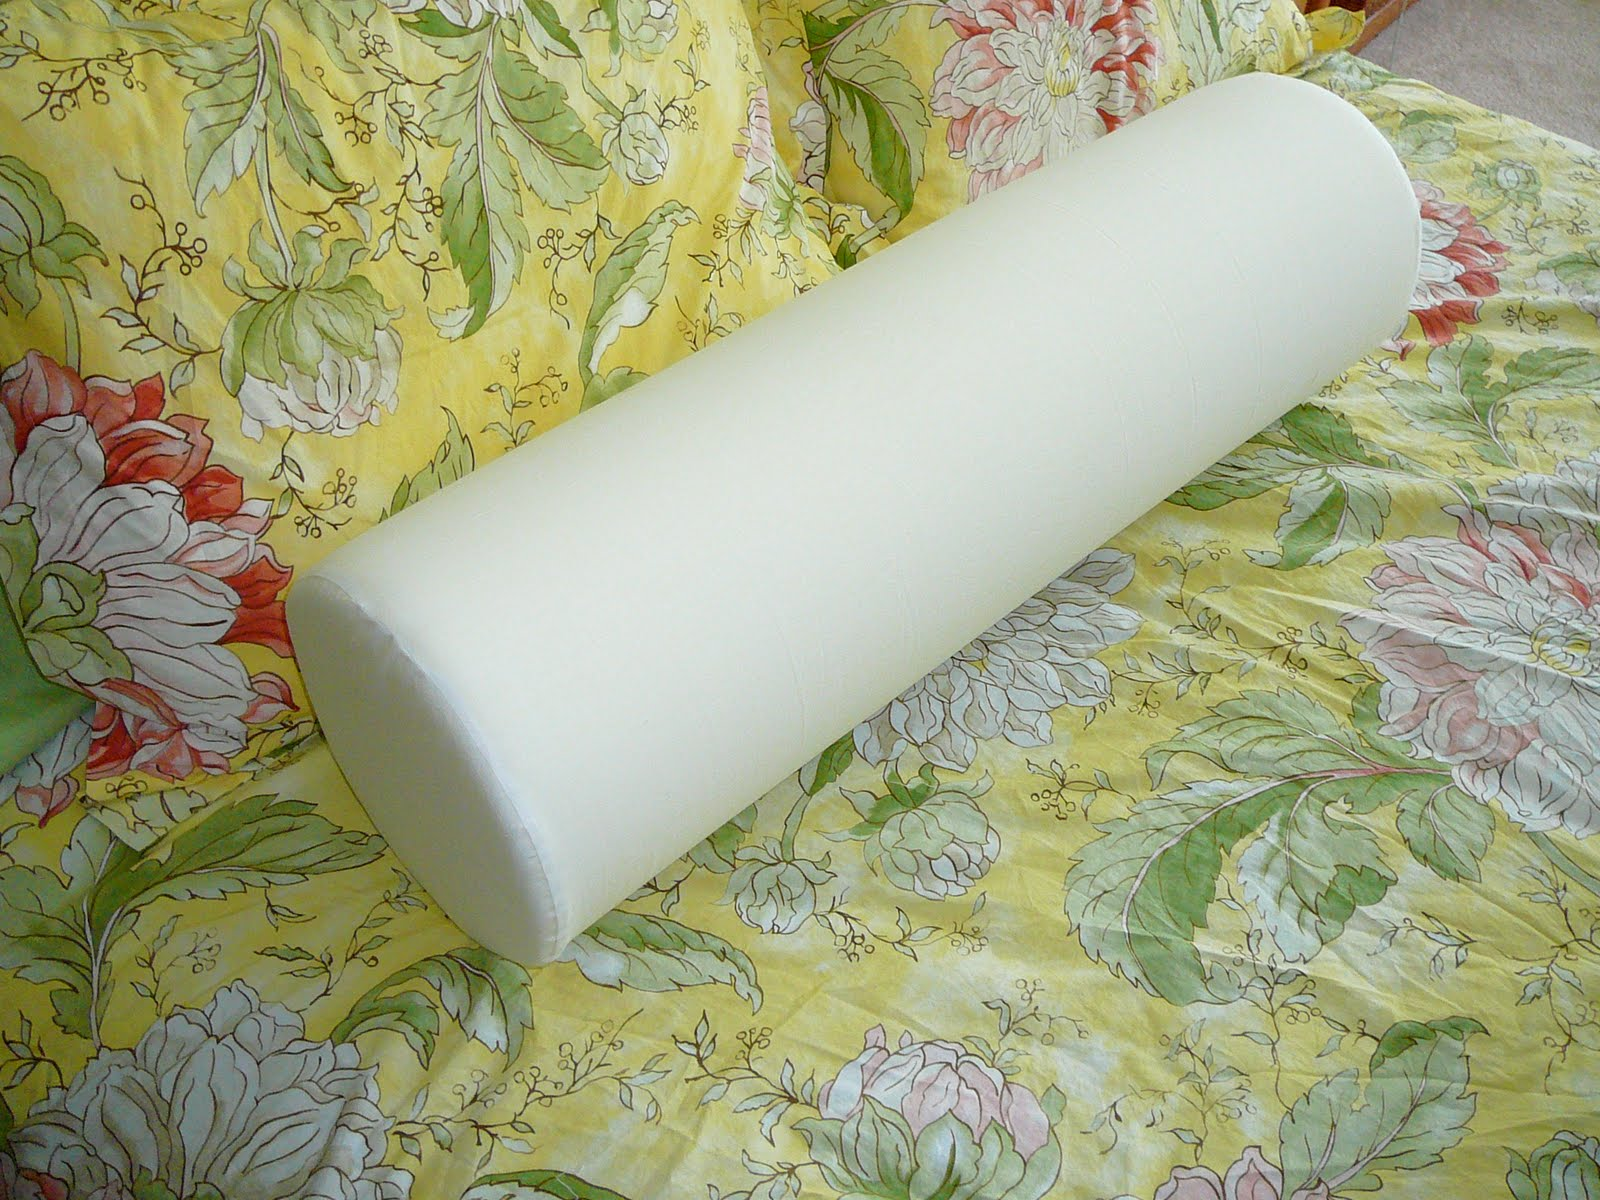 celestial textiles the cylindrical ikea pillow On bolster pillow ikea